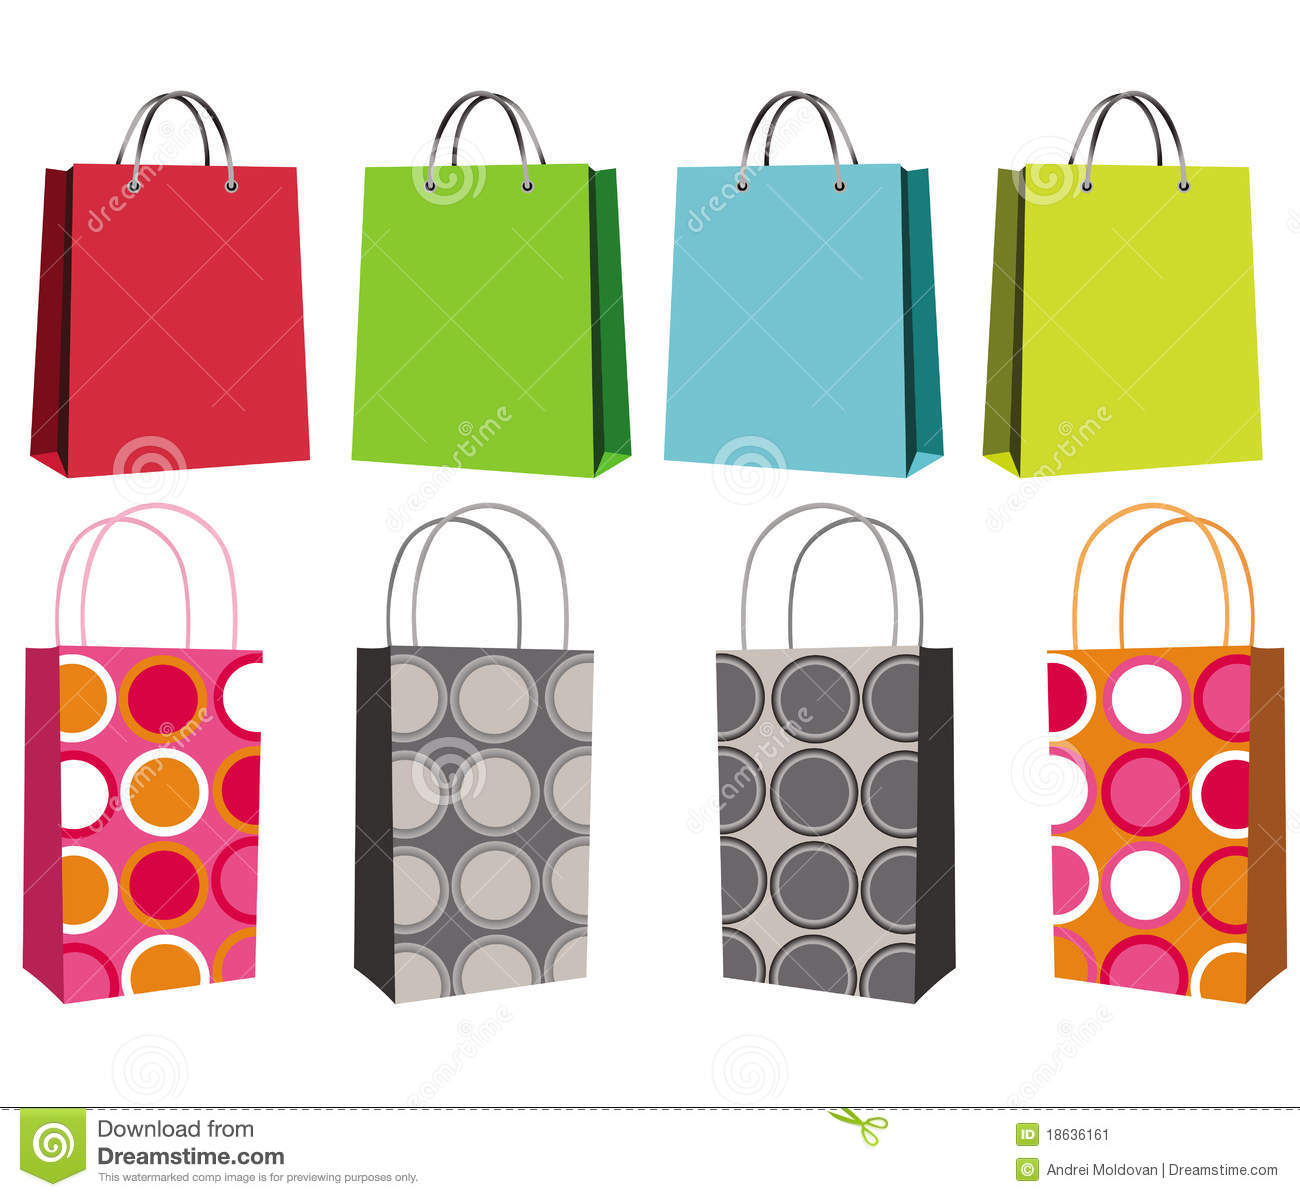 Set Of Eight Shopping Bags Stock Image - Image: 18636161